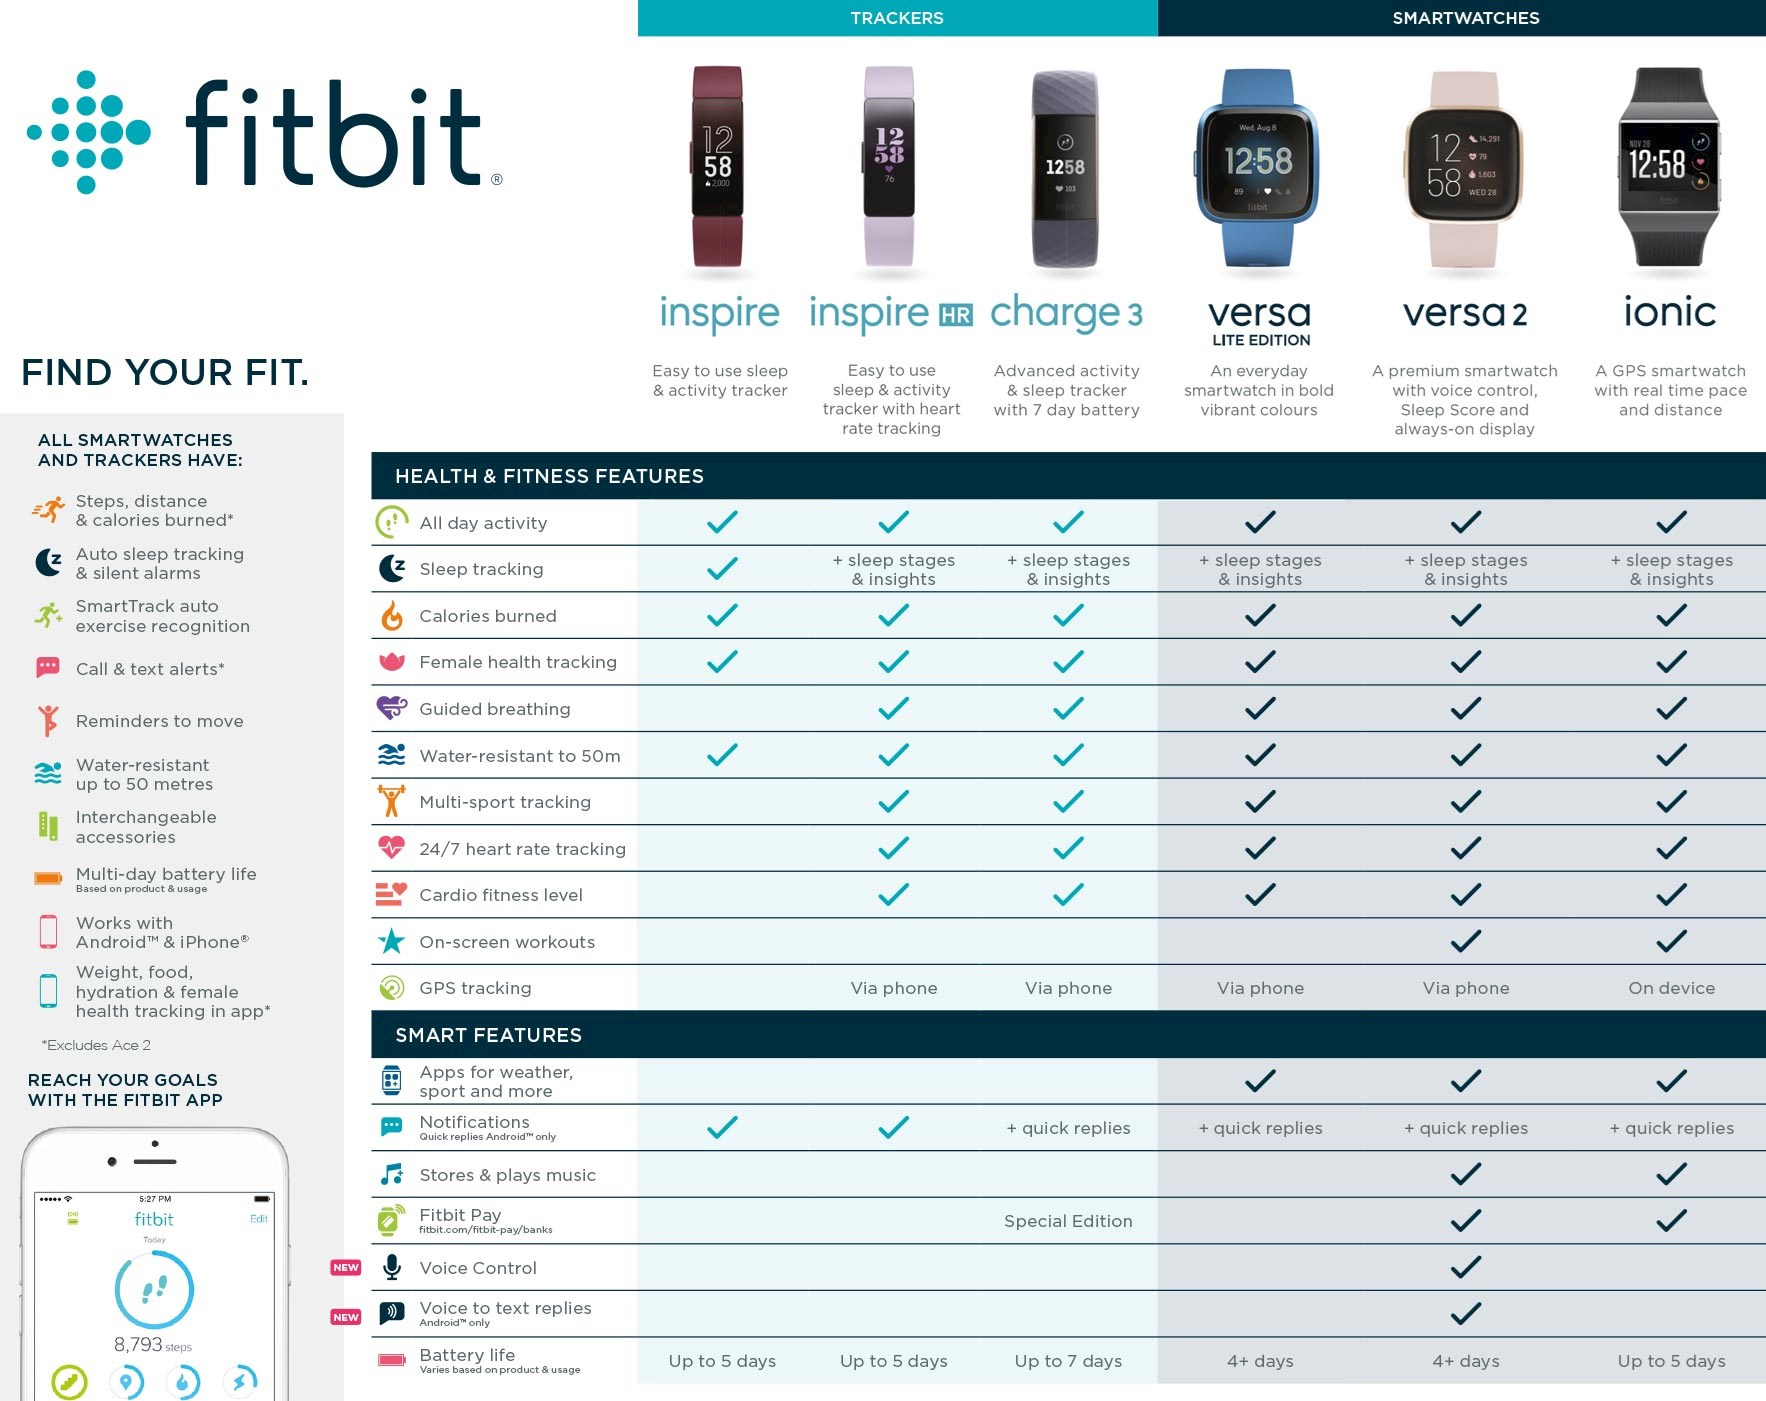 Fitbit StandOut Features